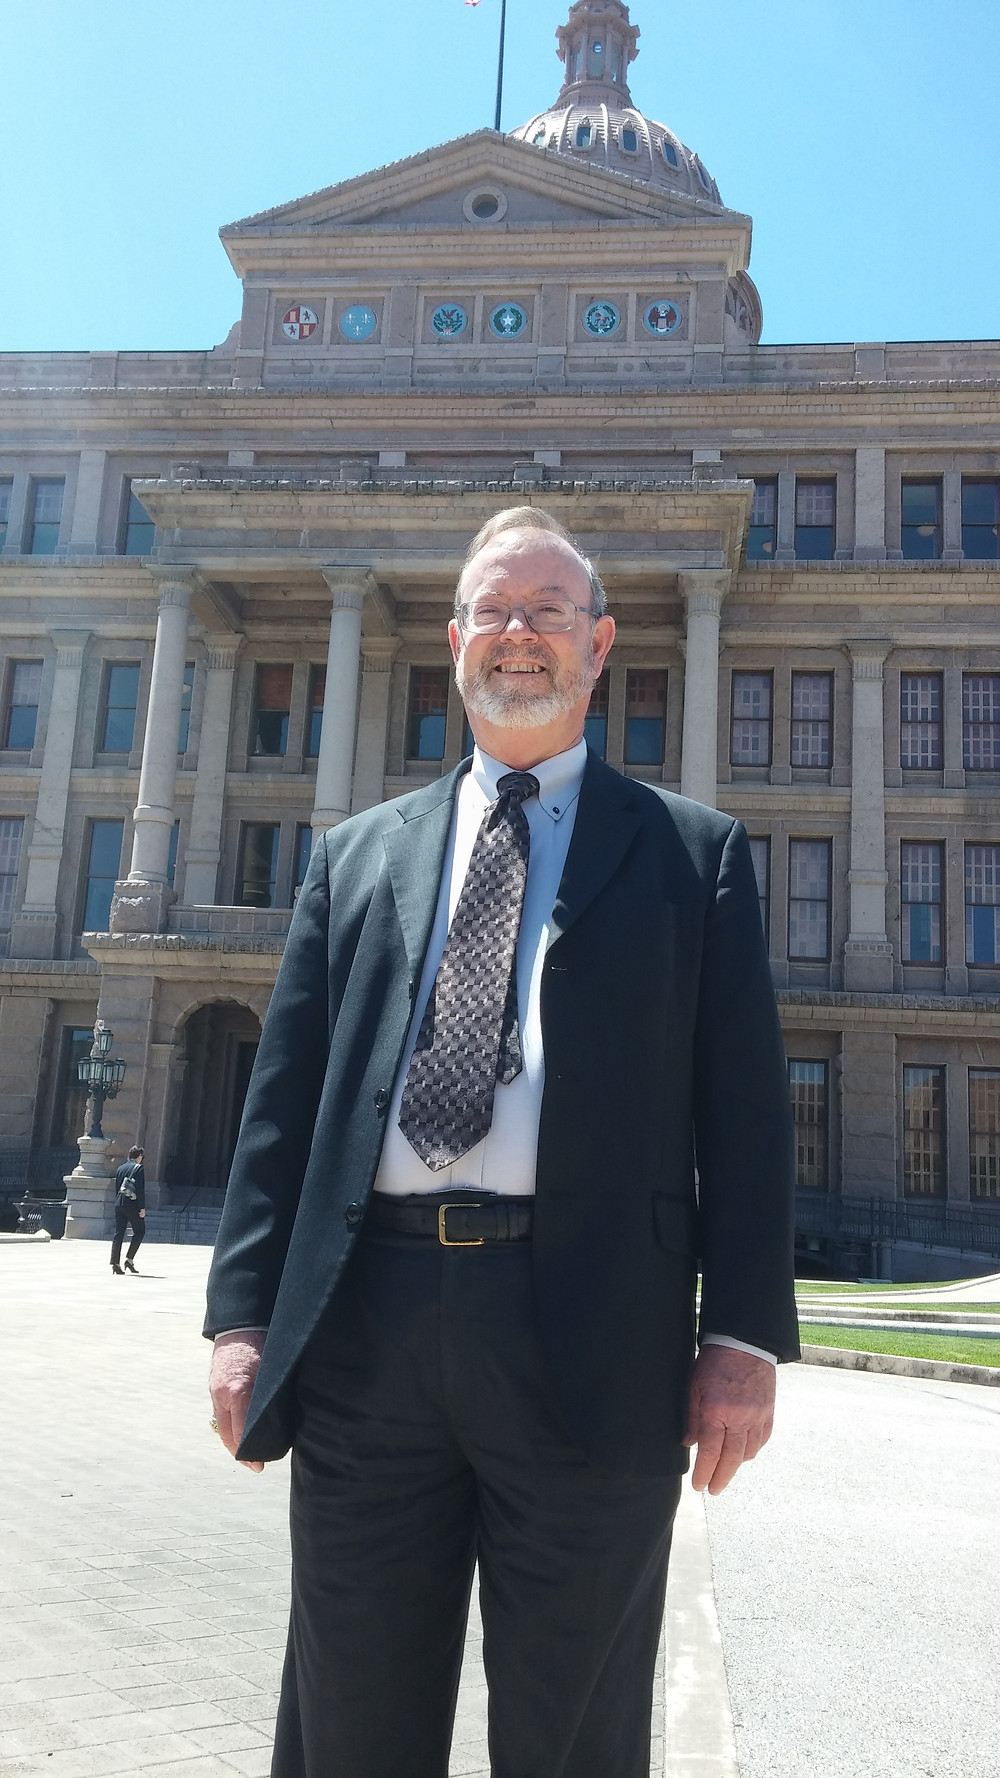 Sam Drugan outside the Texas Capitol building.